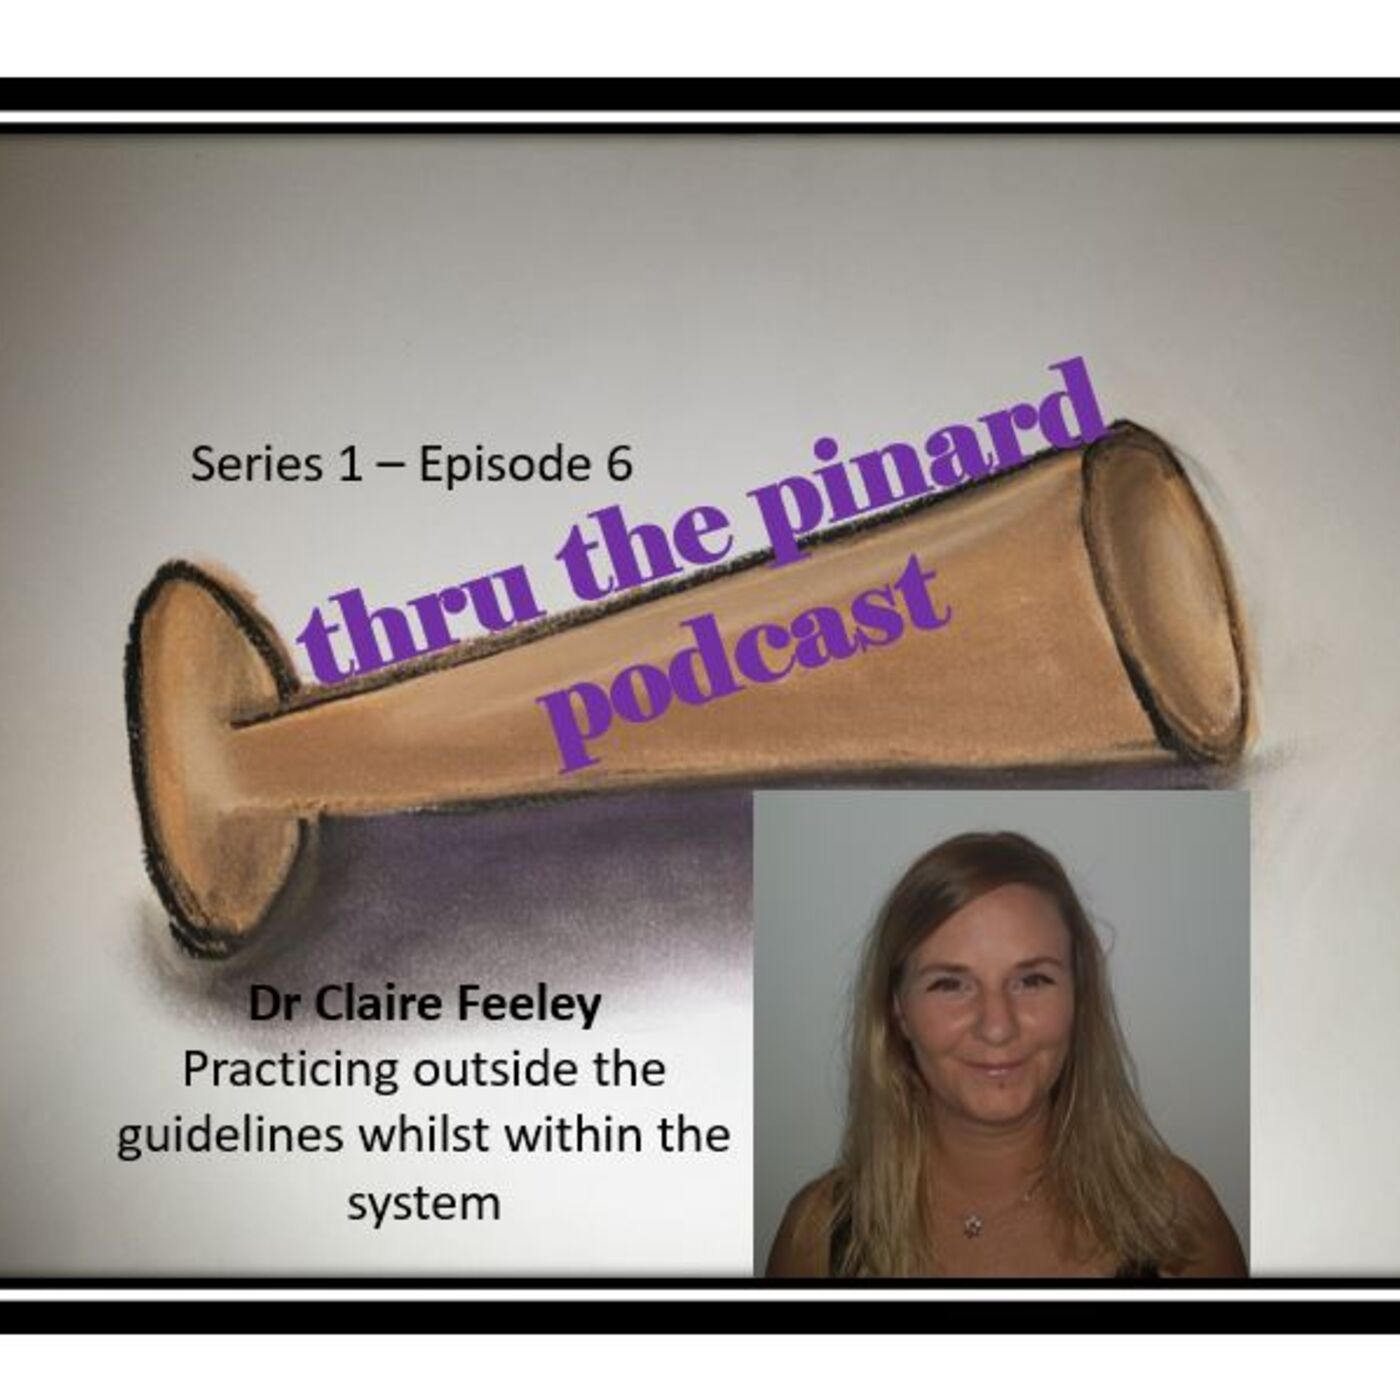 Episode 6 - Dr Claire Feeley & practicing outside the guidelines whilst within the system